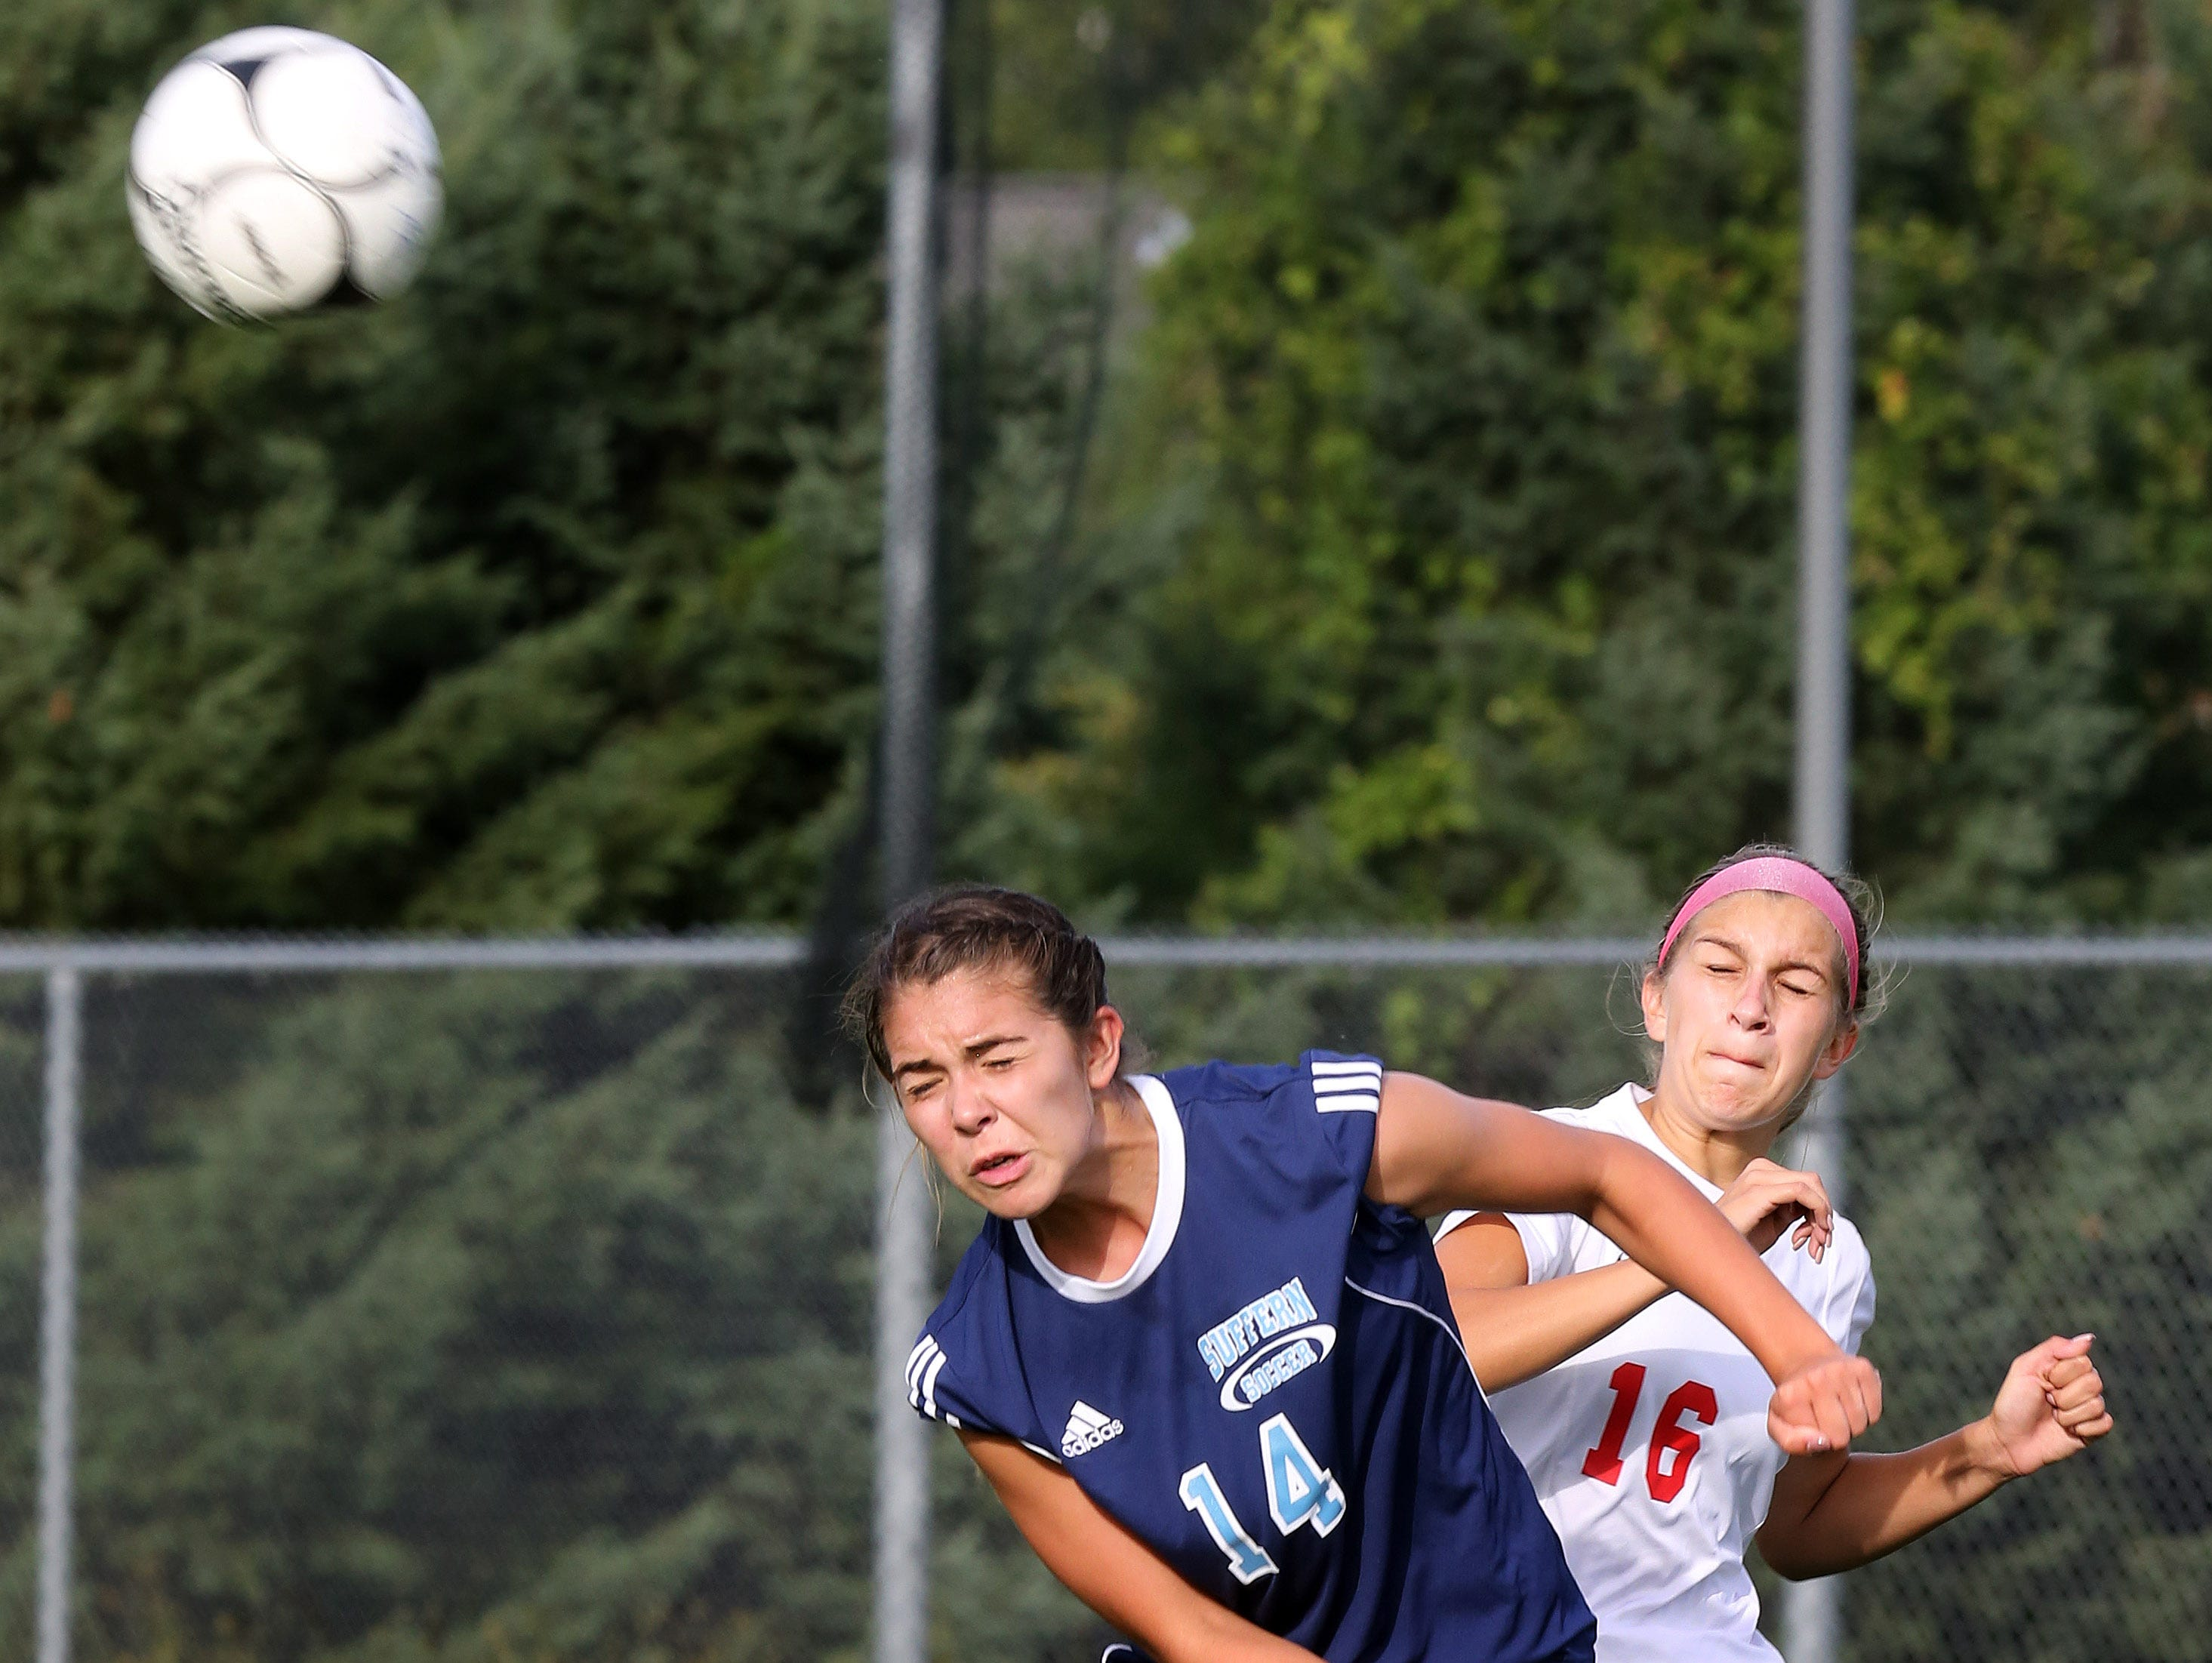 Suffern's Tatiana Cruz (14) and North Rockland's Ashley Morales (16) battle for control of the ball during girls soccer game at North Rockland High School in Theills on Sept. 21, 2016.